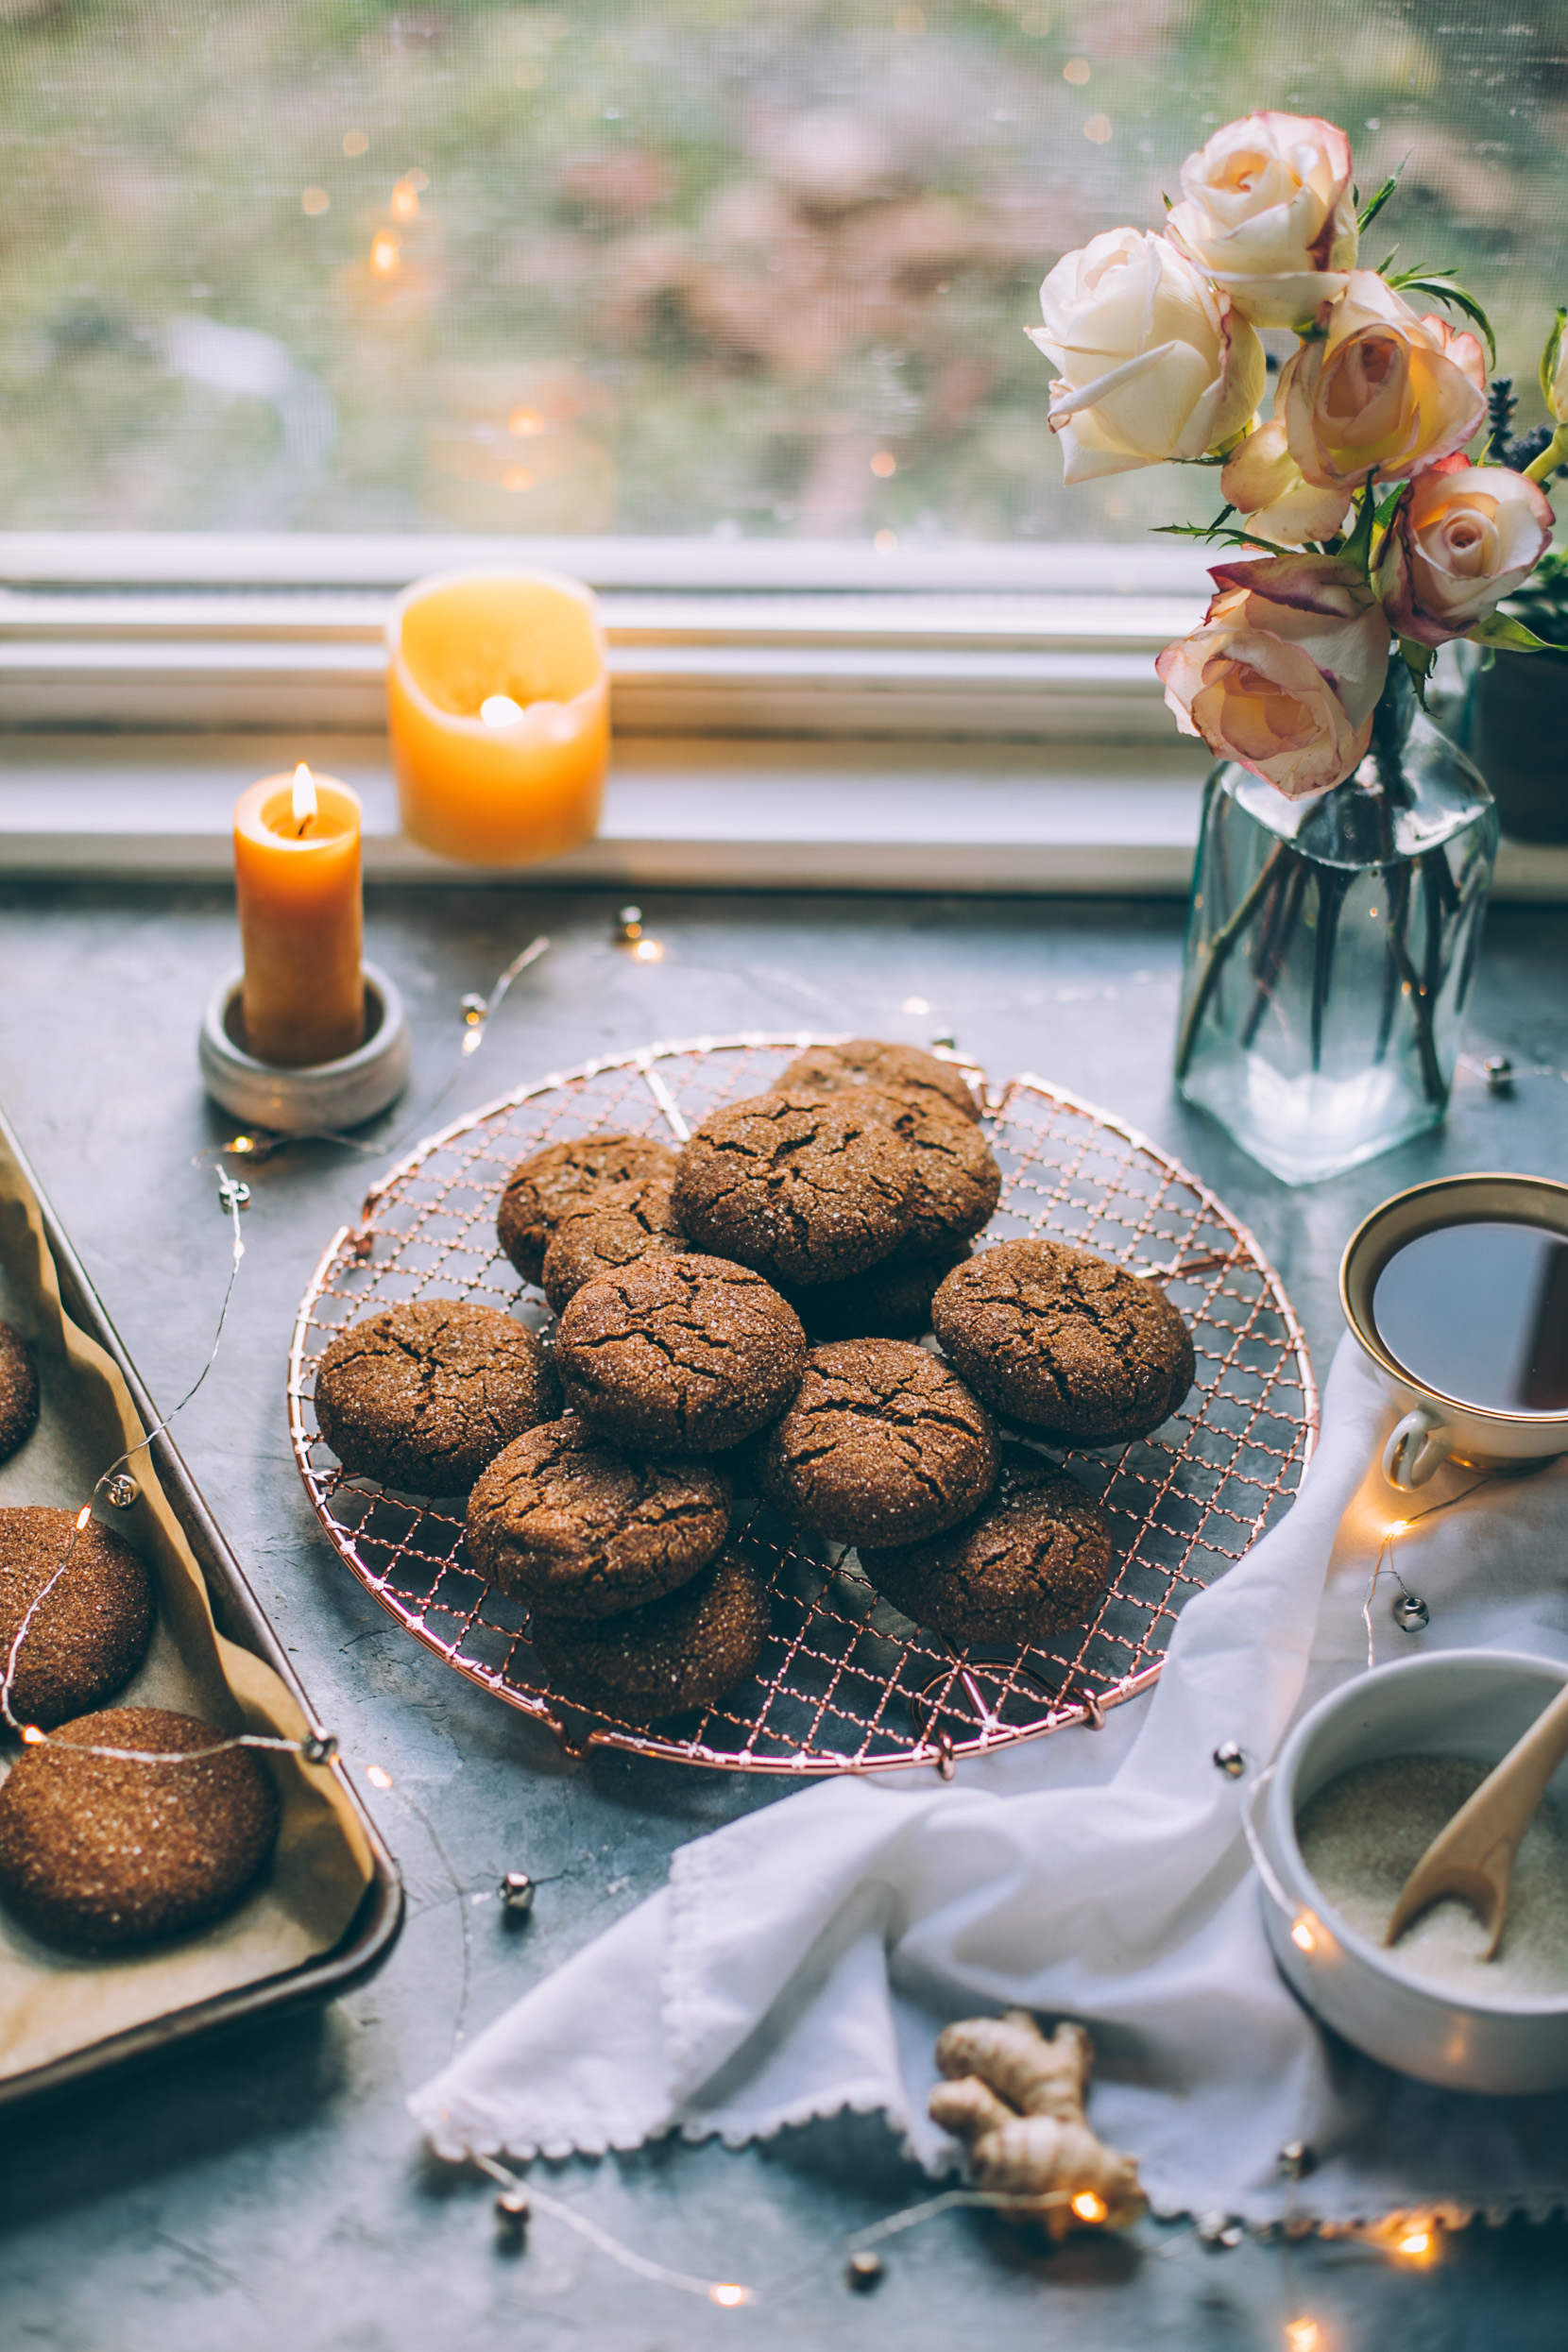 coconut sugar sweetened double ginger molasses cookies (dairy free, gluten free option